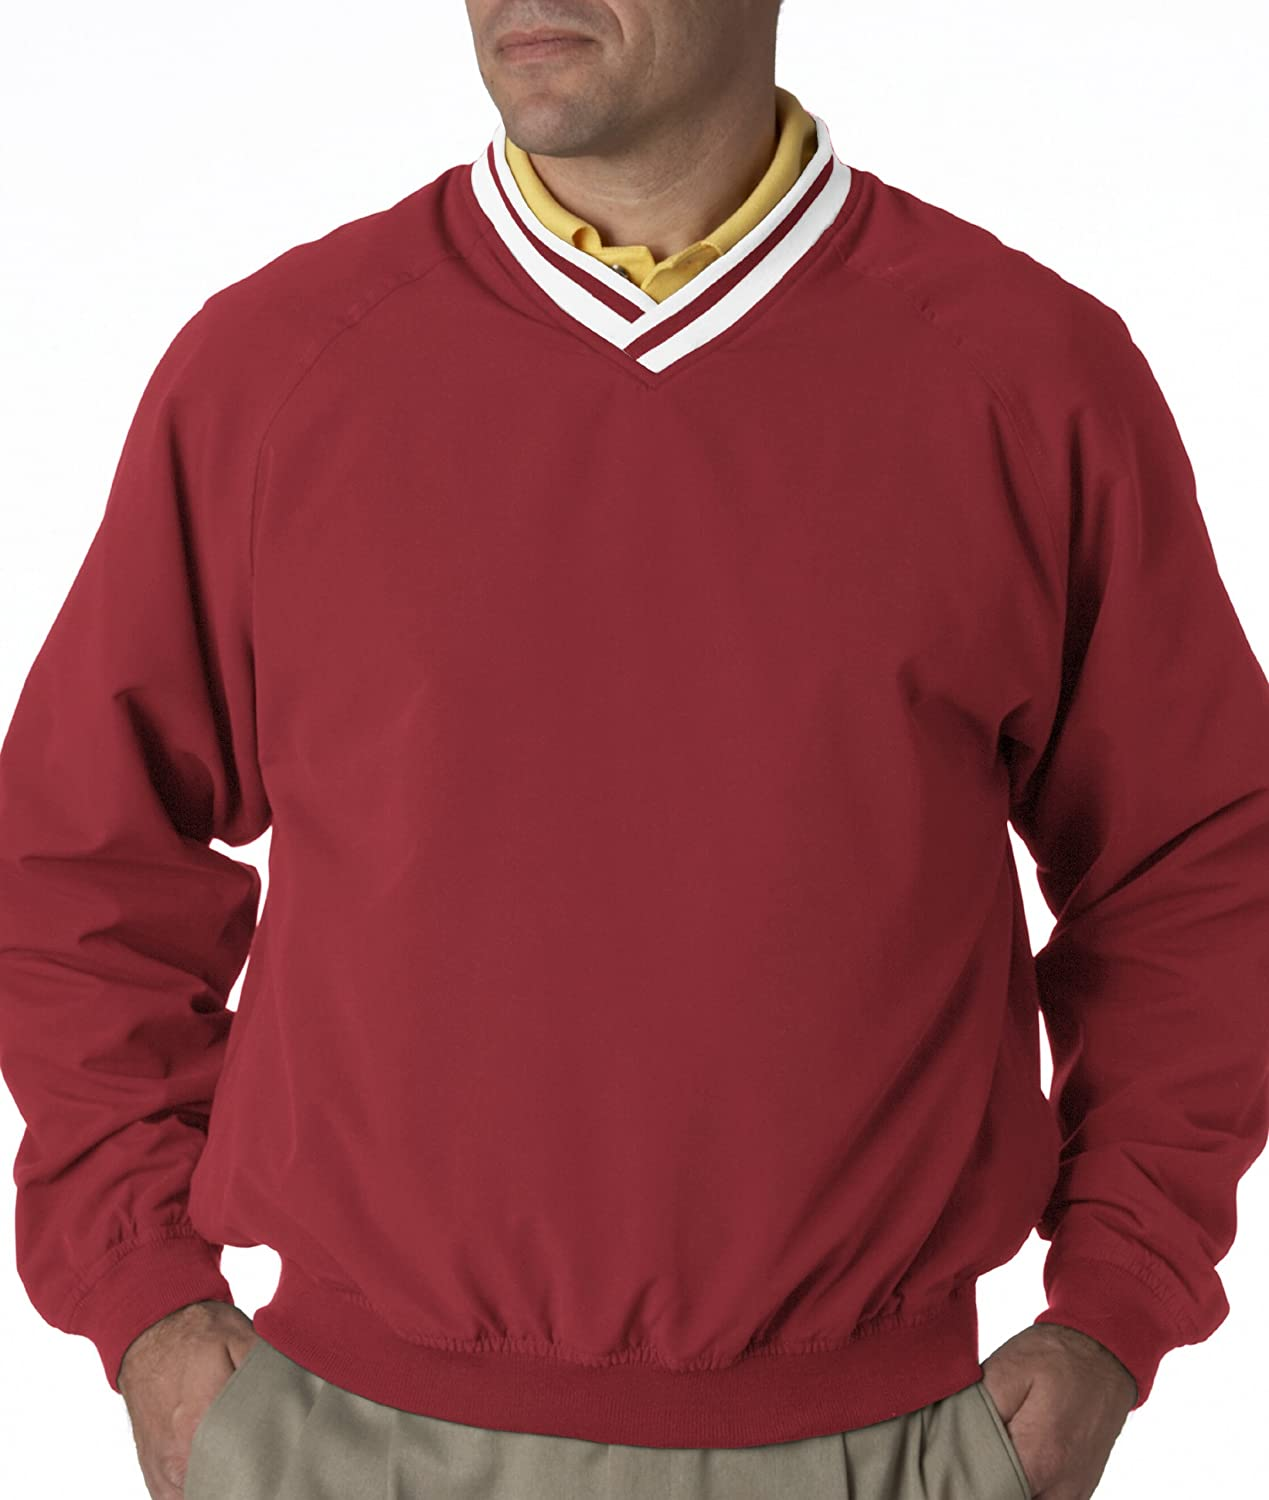 UltraClub Long-Sleeve Microfiber Cross-Over V-Neck Windshirt 8926 4XL Red//White